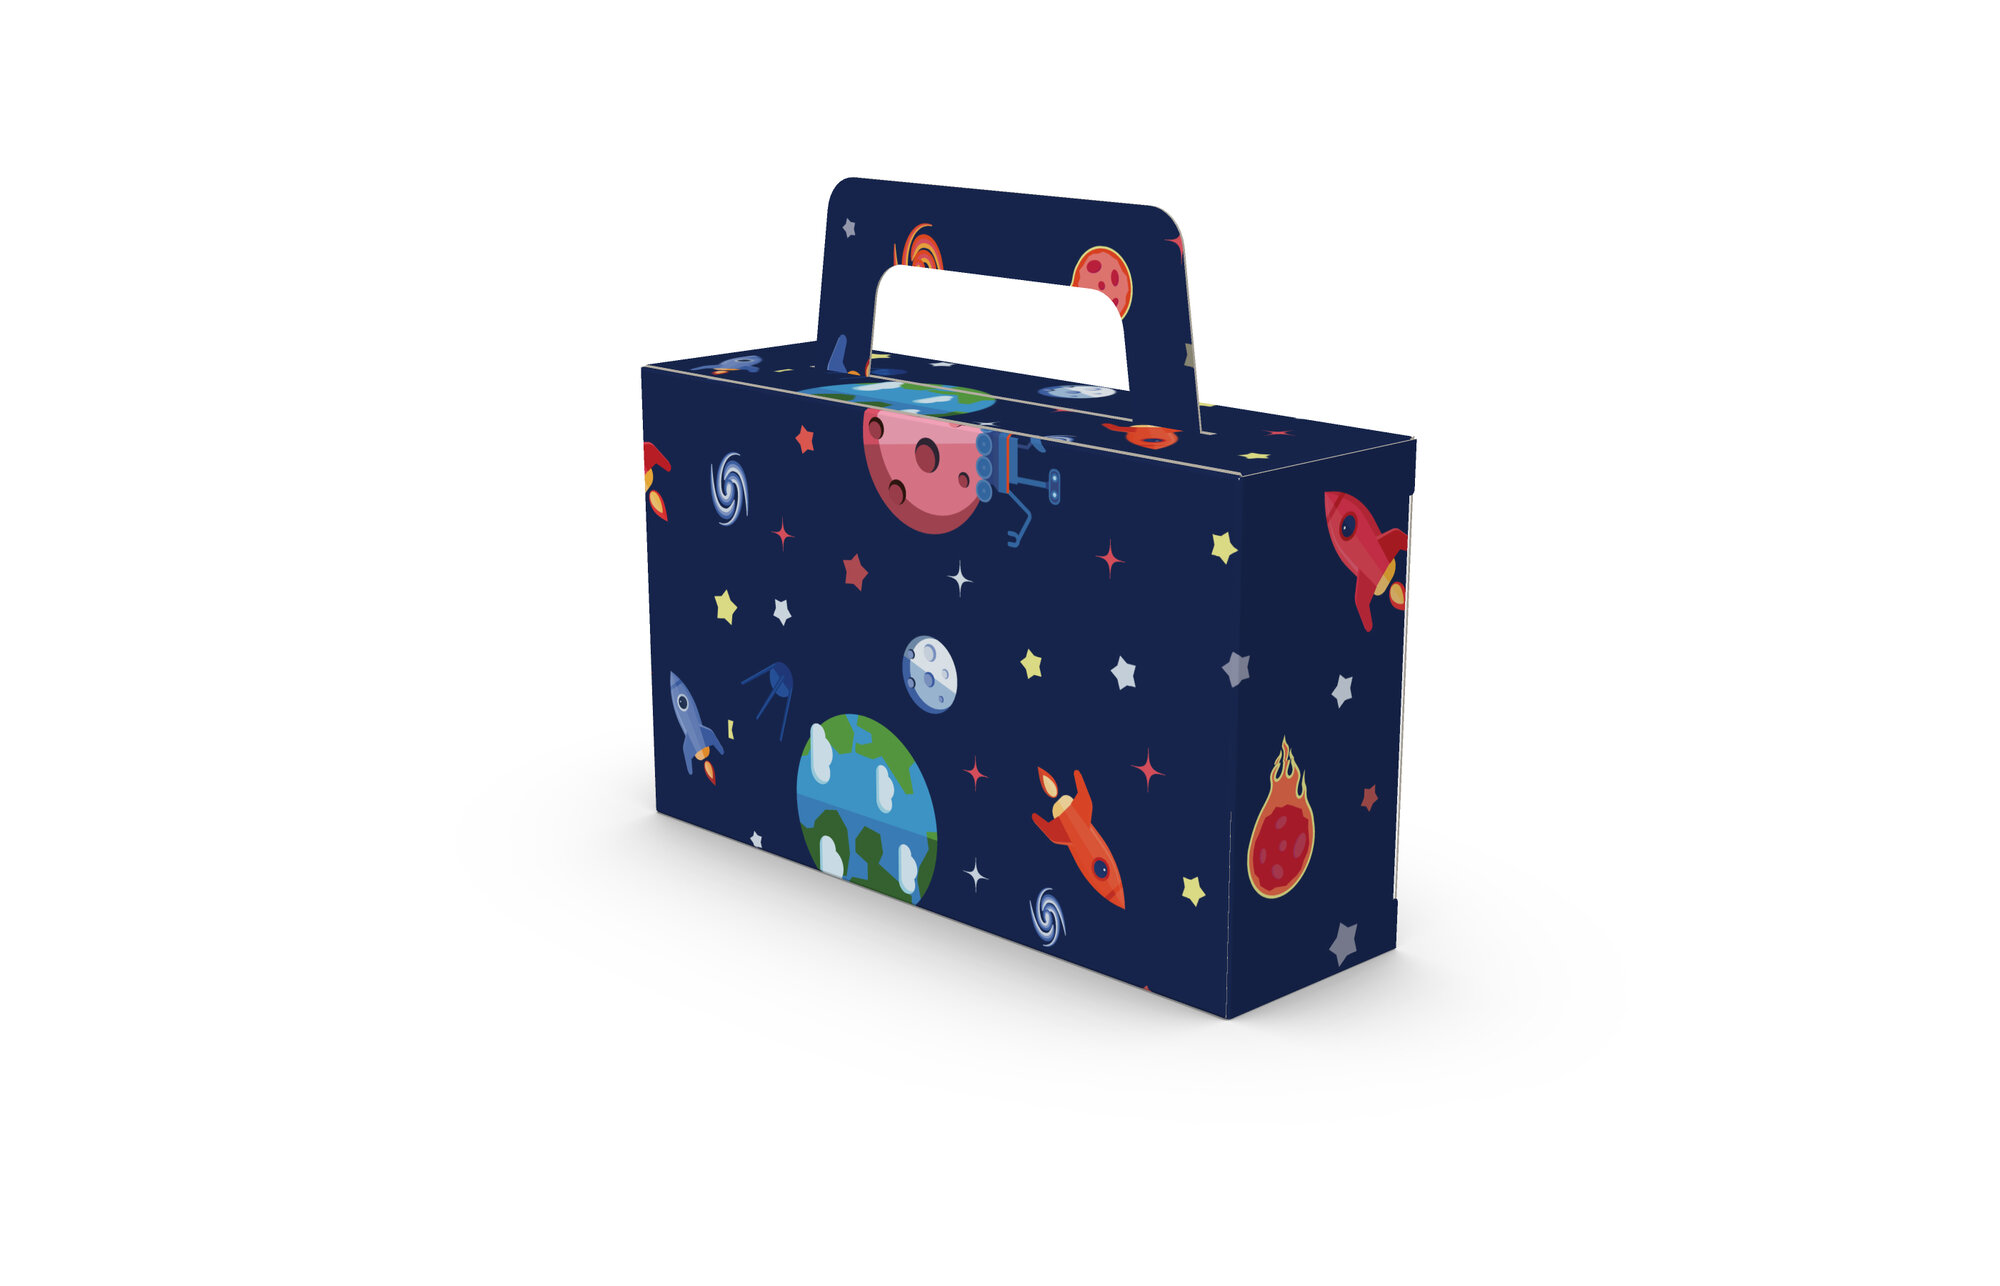 https://www.magentadepot.com/images/products_gallery_images/suitcase_art2.jpg